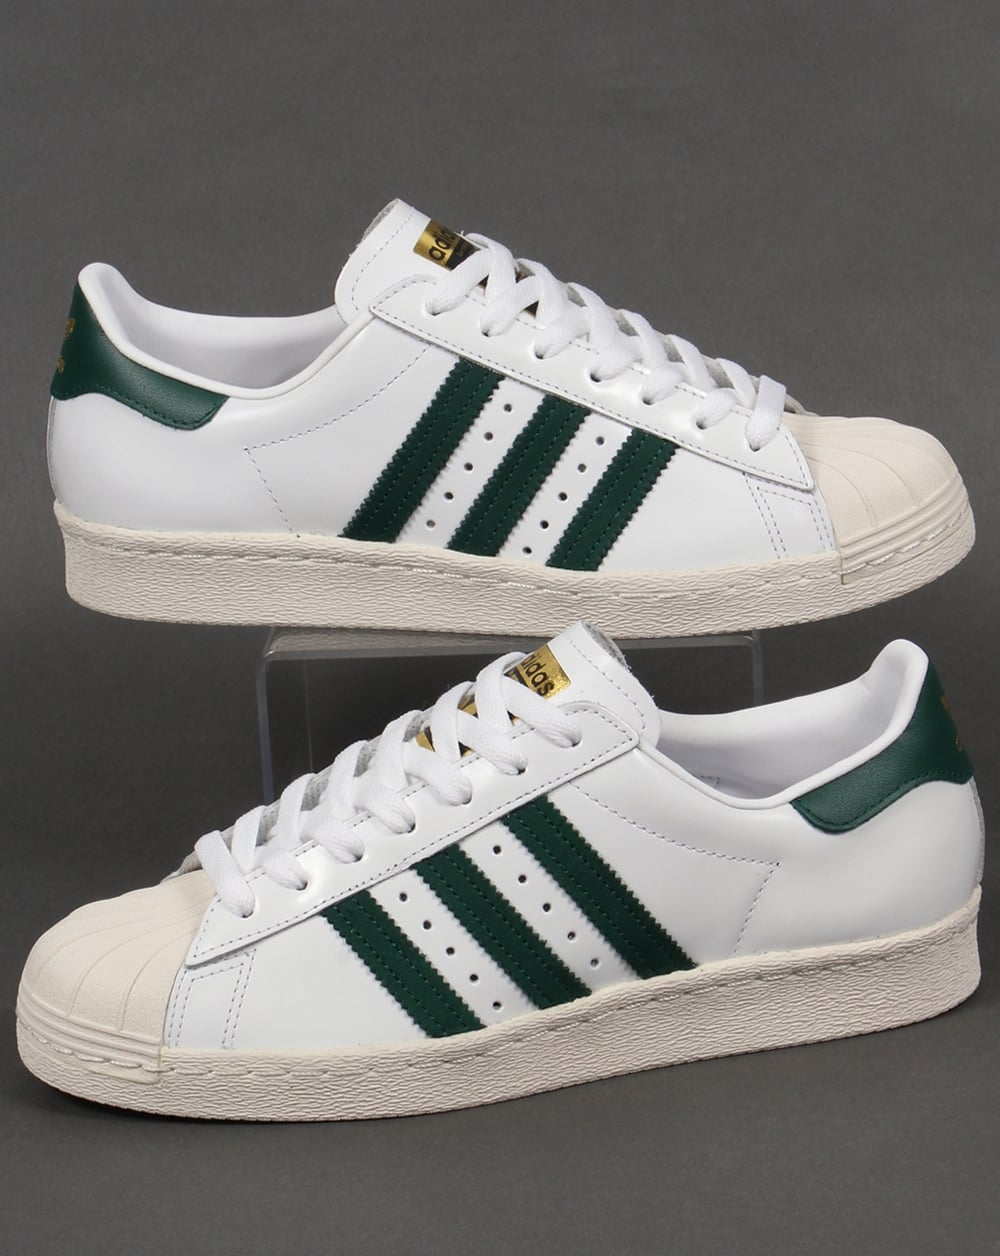 Cheap Adidas Superstar 80s Vintage White/Camo Gold Quickstrike Q16292